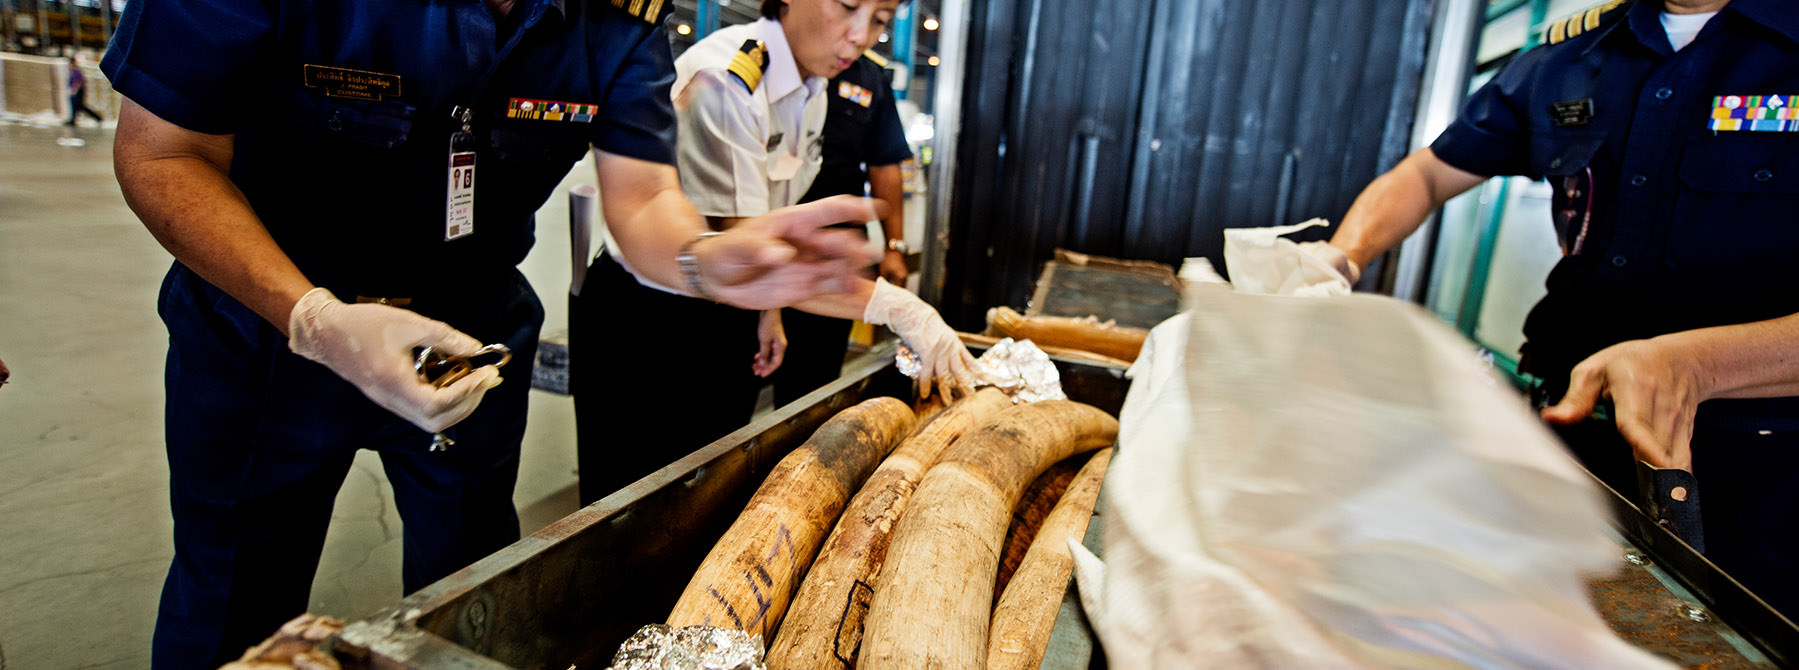 Customs officials in Suvarnabhumi discover a shipment of African elephant tusks from Mozambique © WWF / James Morgan